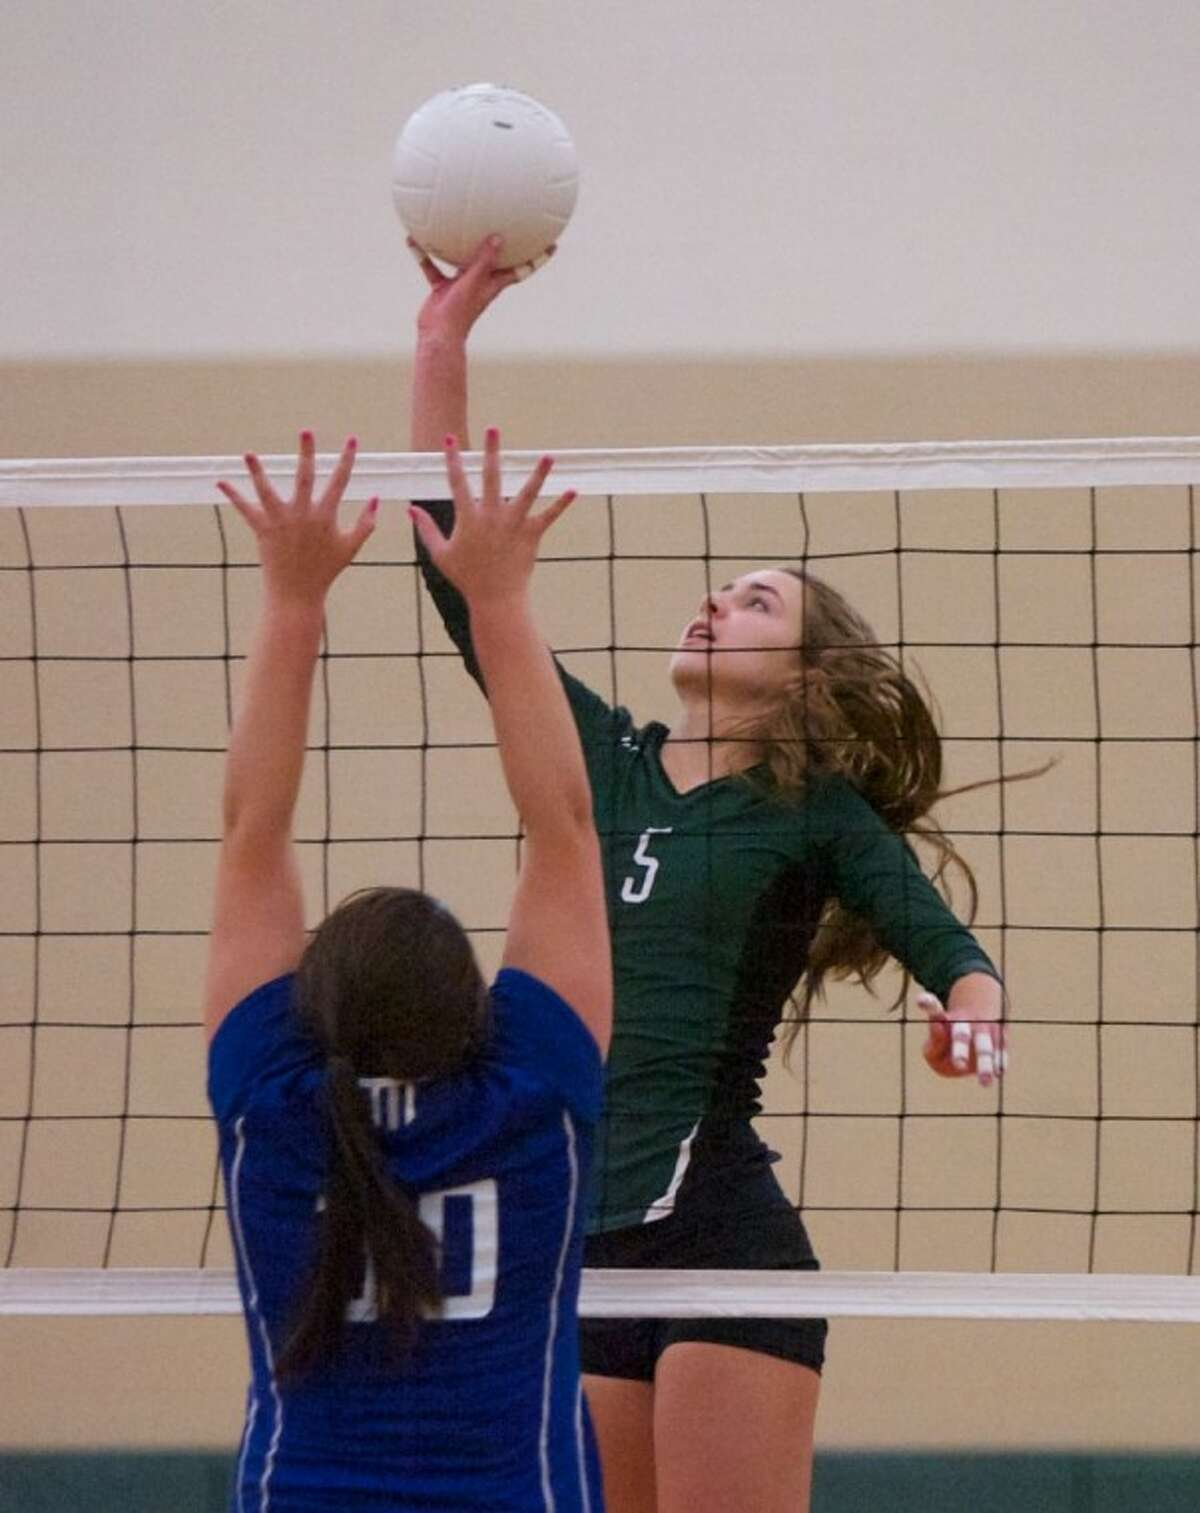 The John Cooper School's Margaret Connett goes up for a spike during Wednesday night's match against Lutheran North in The Woodlands.